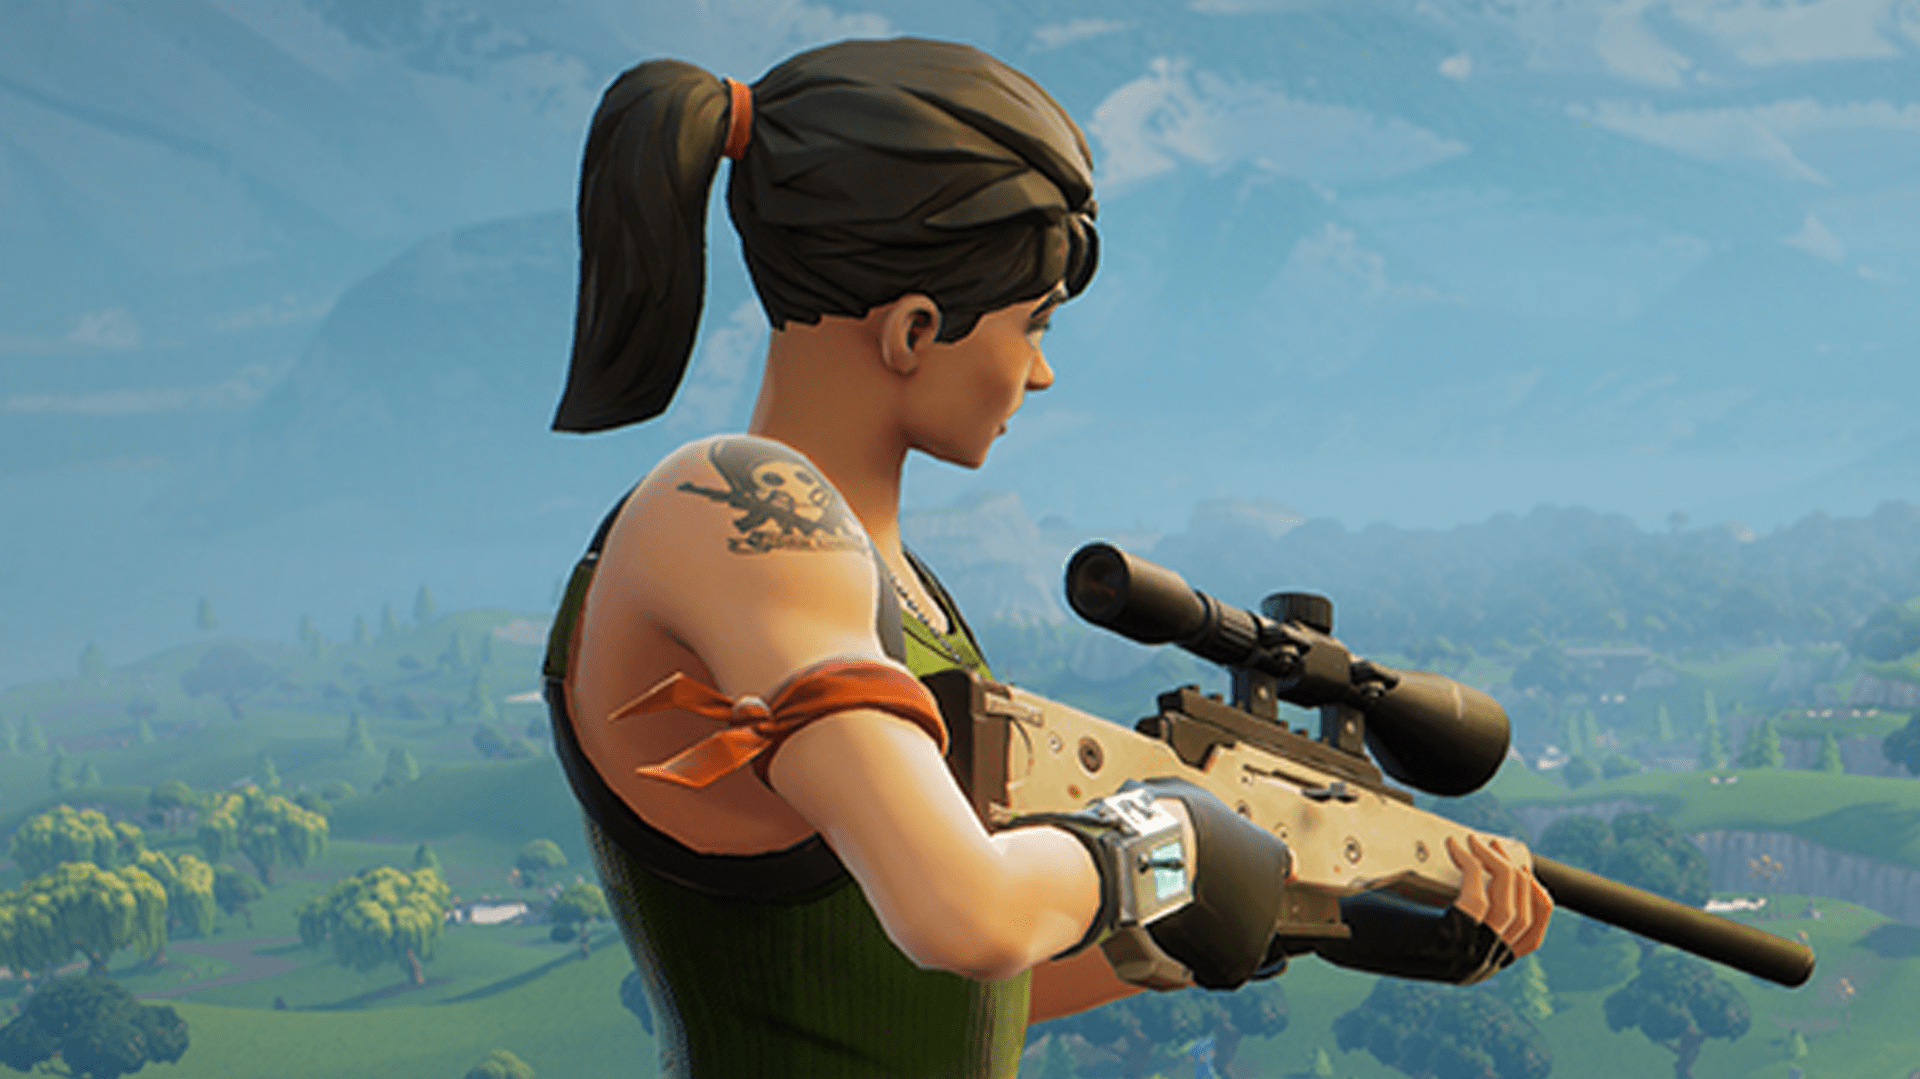 Fortnite: Battle Royale Sniper Shootout guide: Tips, tactics and